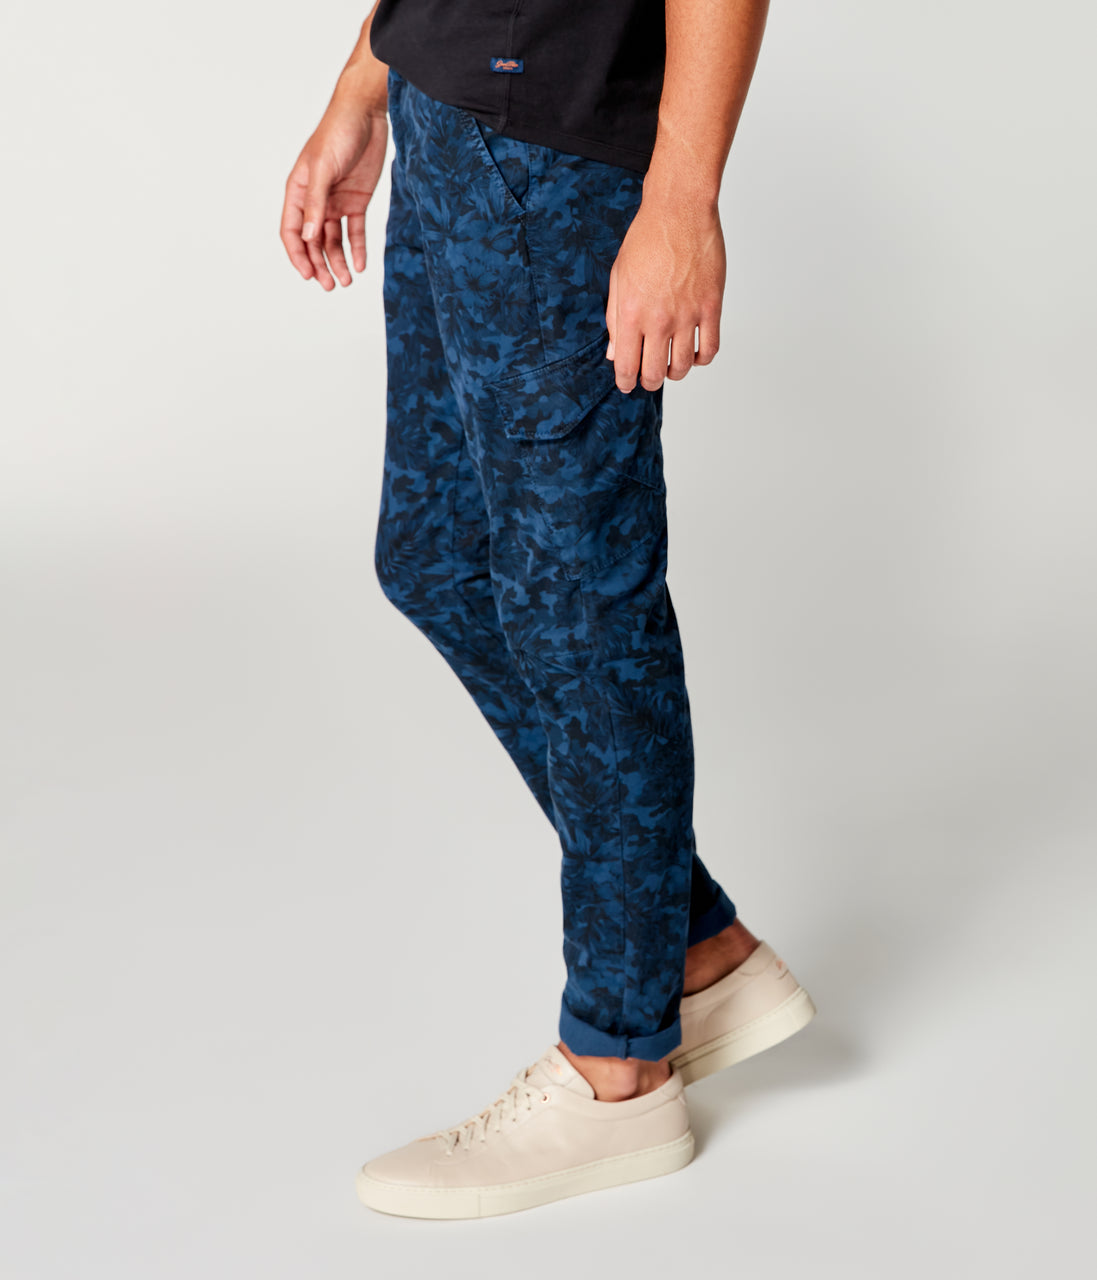 Pro Stretch Twill Star Chino Camo Cargo - Indigo - Good Man Brand - Pro Stretch Twill Star Chino Camo Cargo - Denim Blue